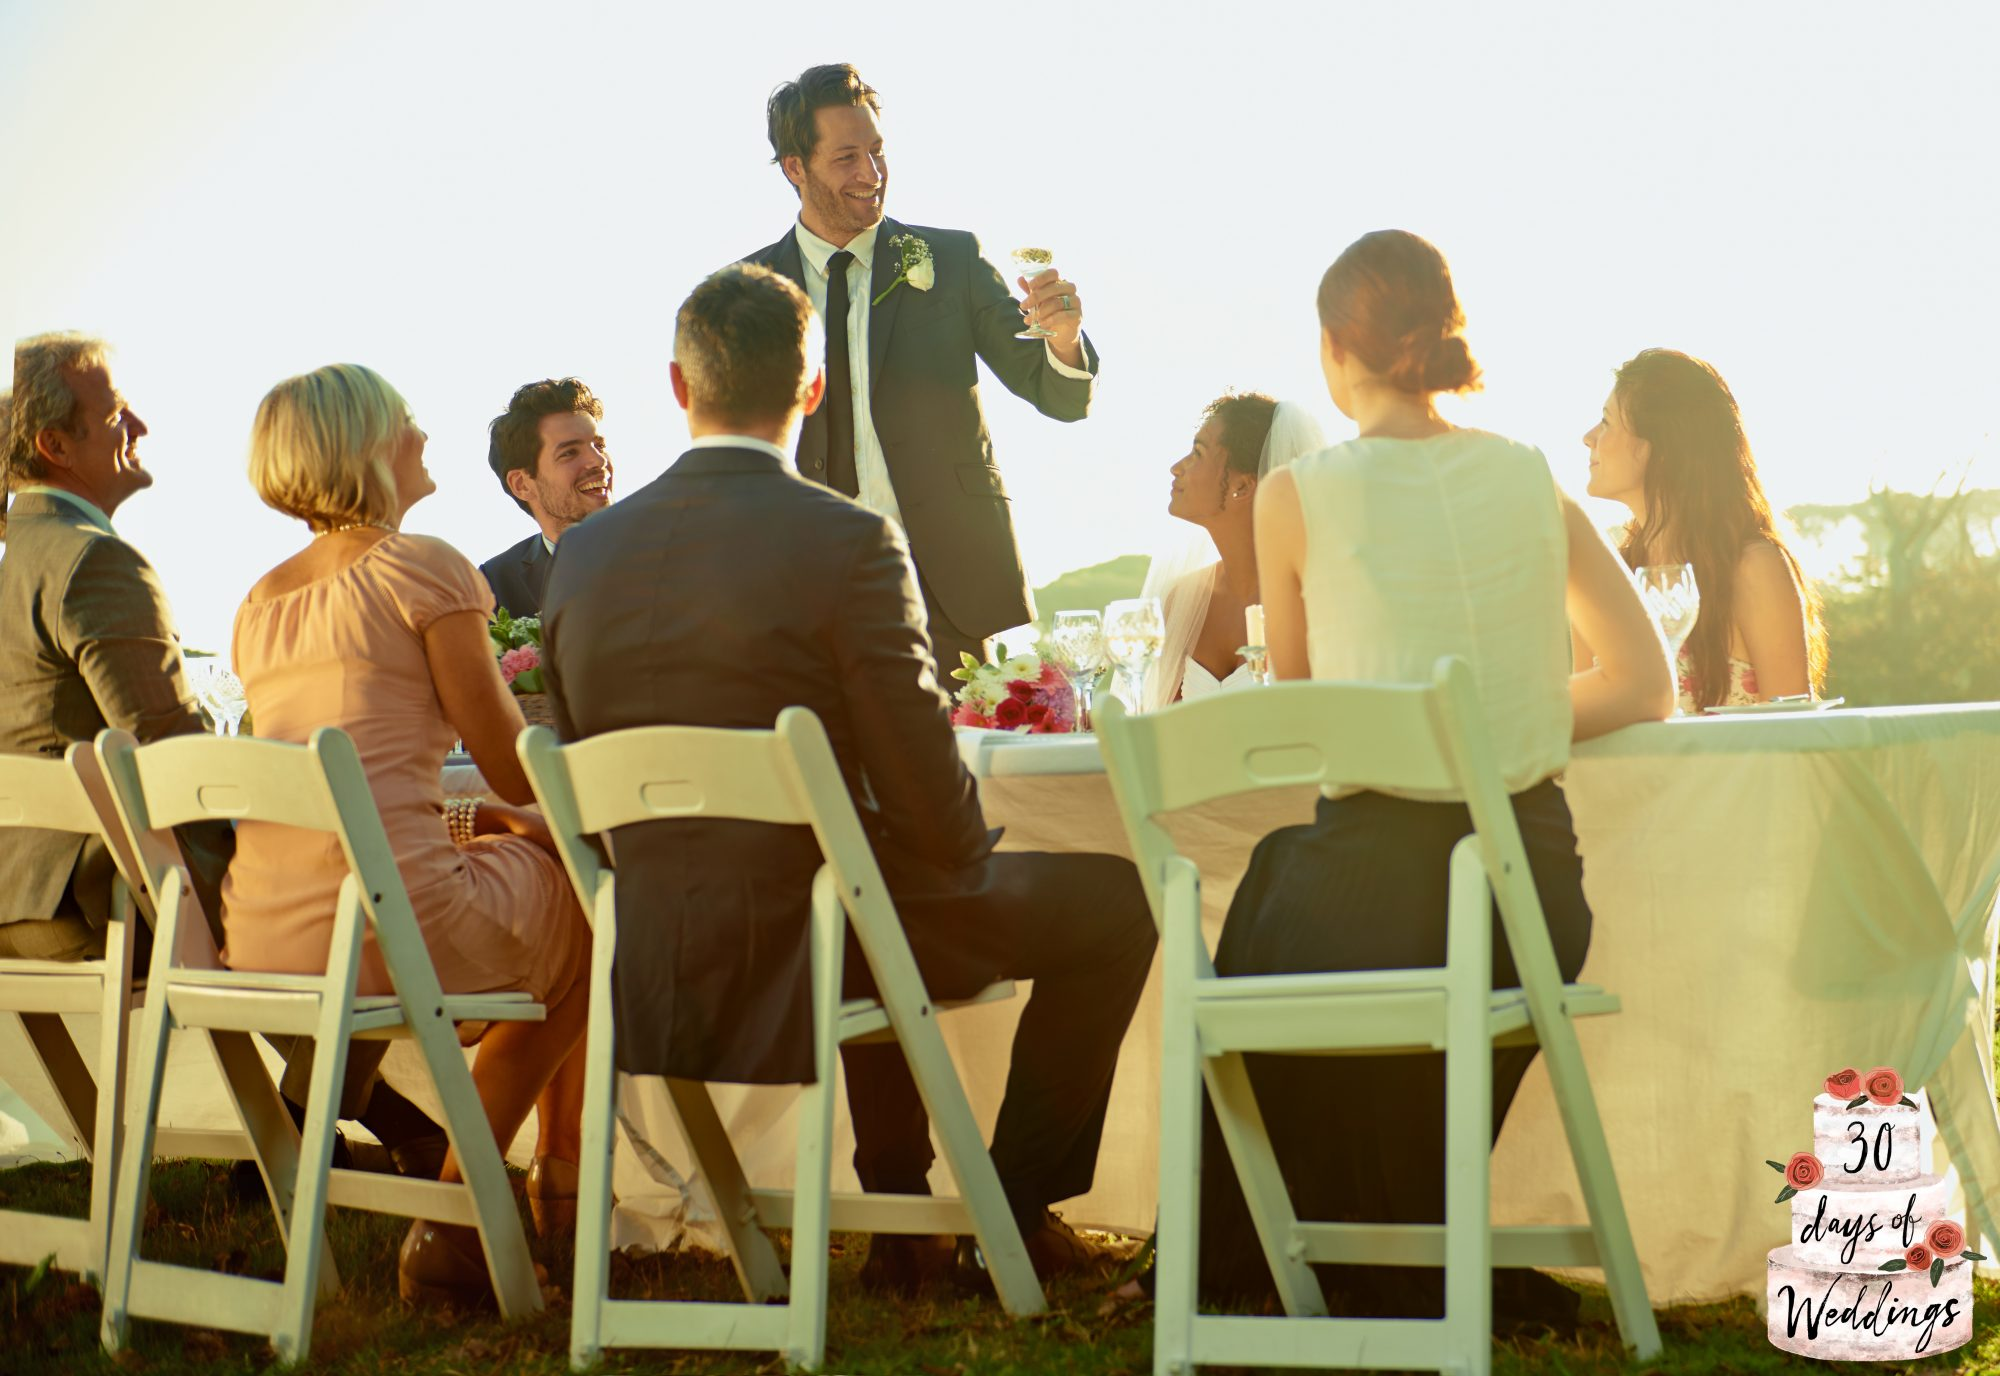 How To Give A Meaningful MOH Speech If You Hate The Groom